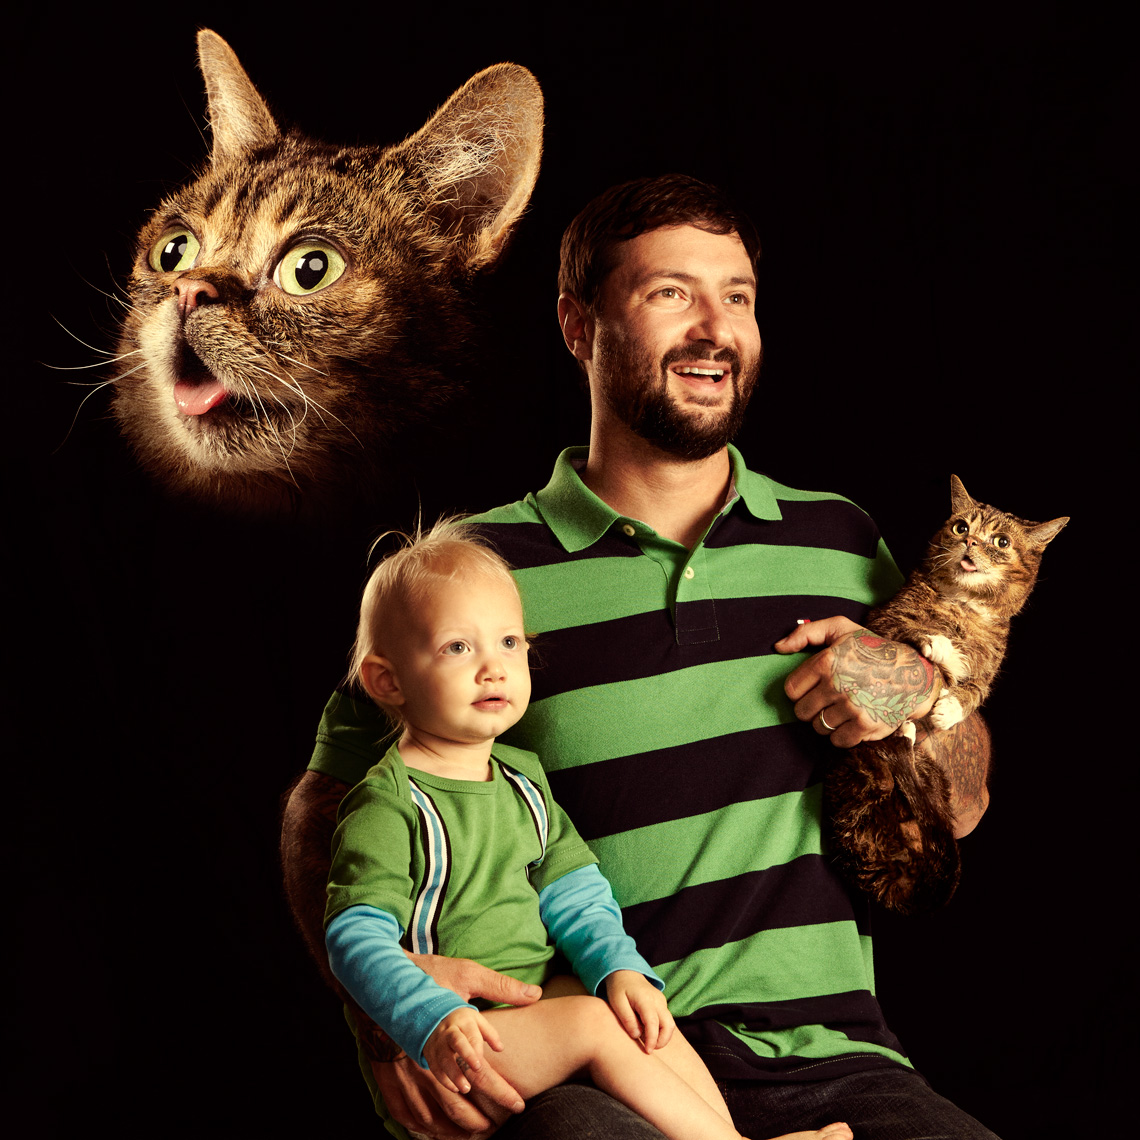 Lil bub awkward family photo